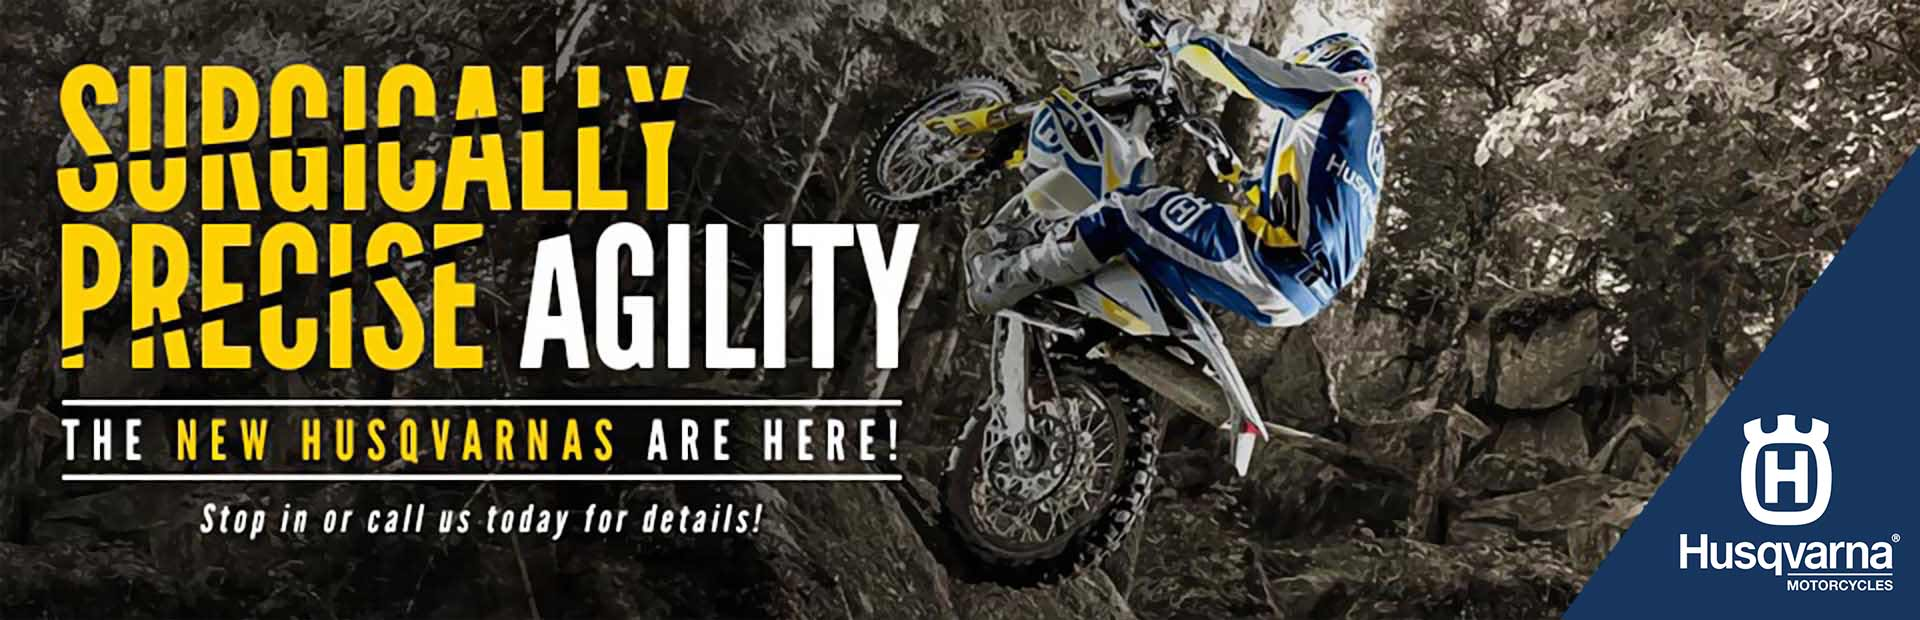 Click here to view the new Husqvarna dirt bikes.